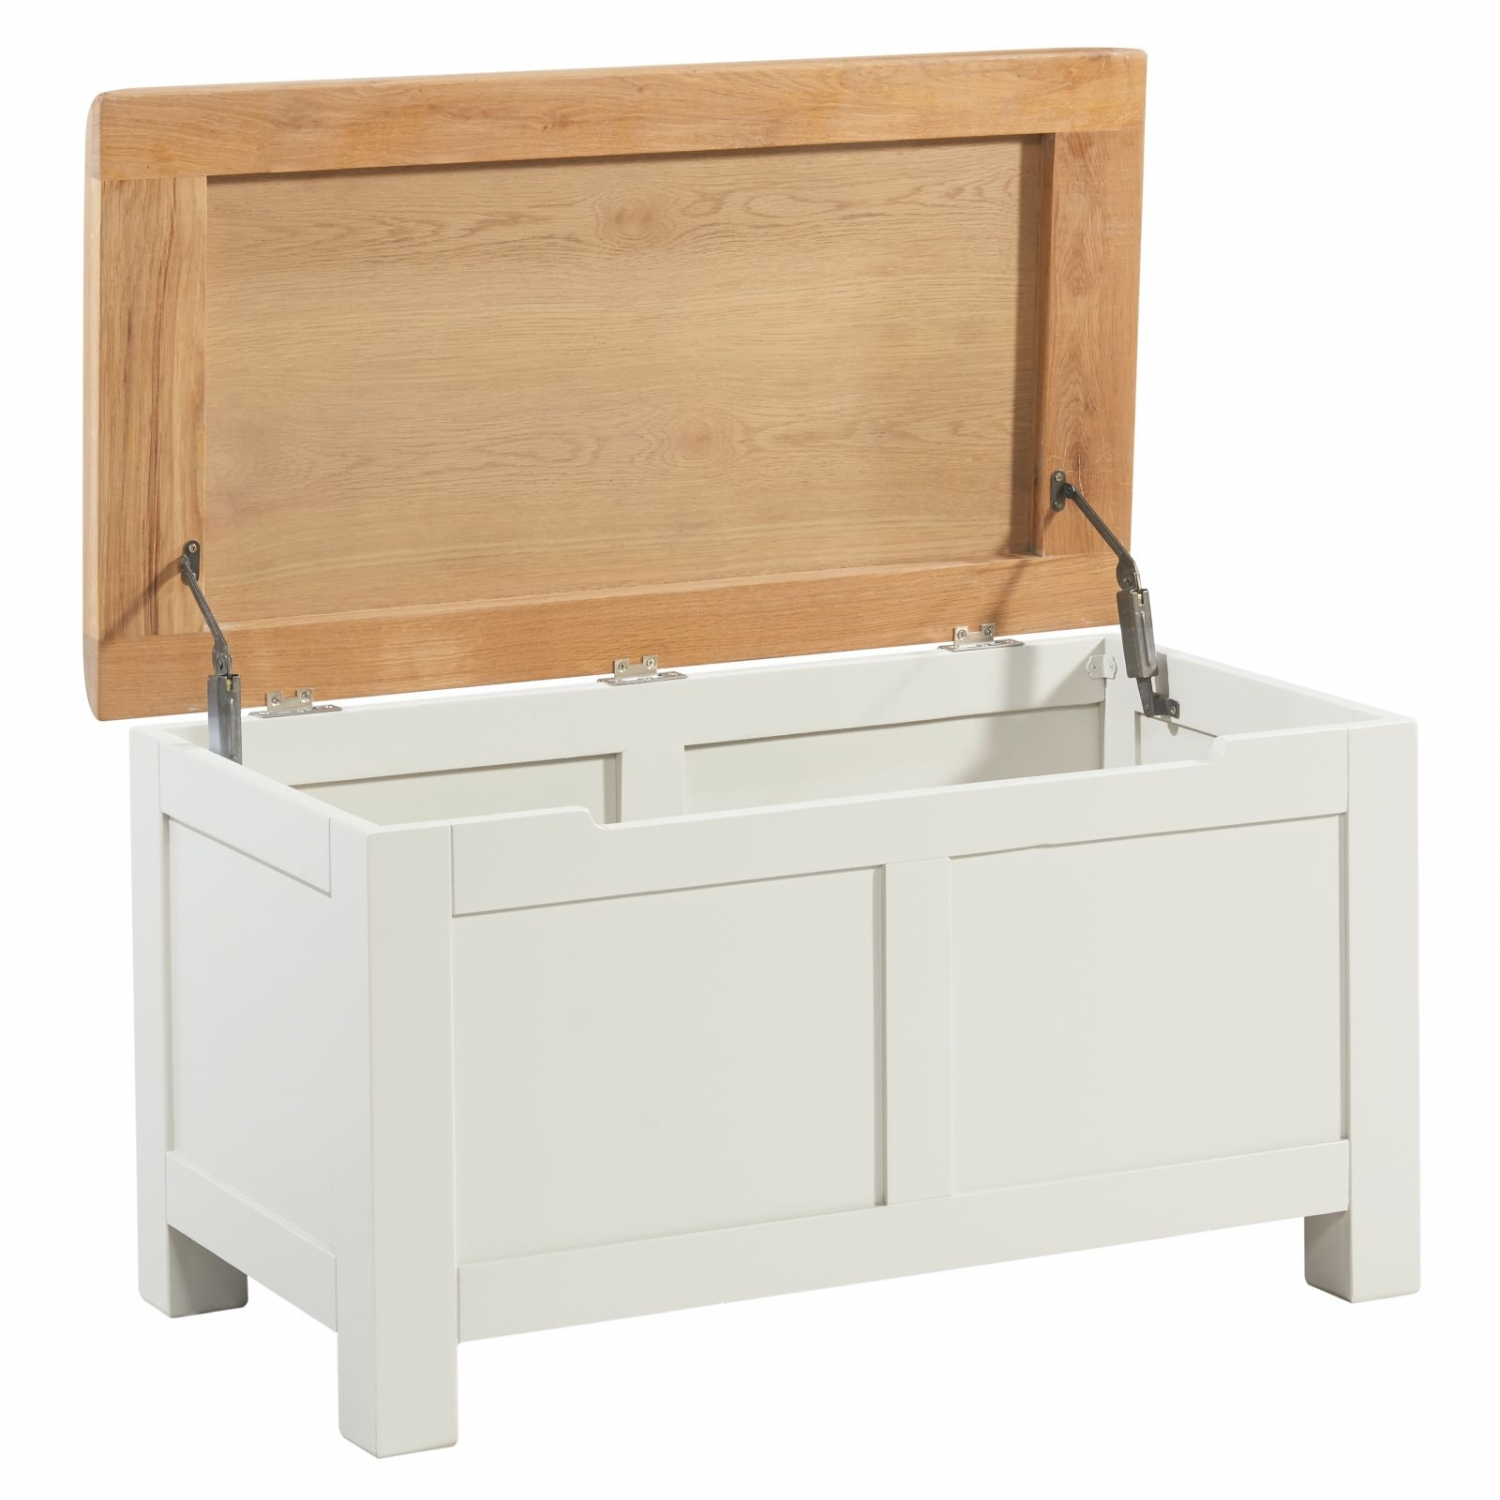 Randall Oak Painted Bedroom Storage Furniture Blanket Box Trunk